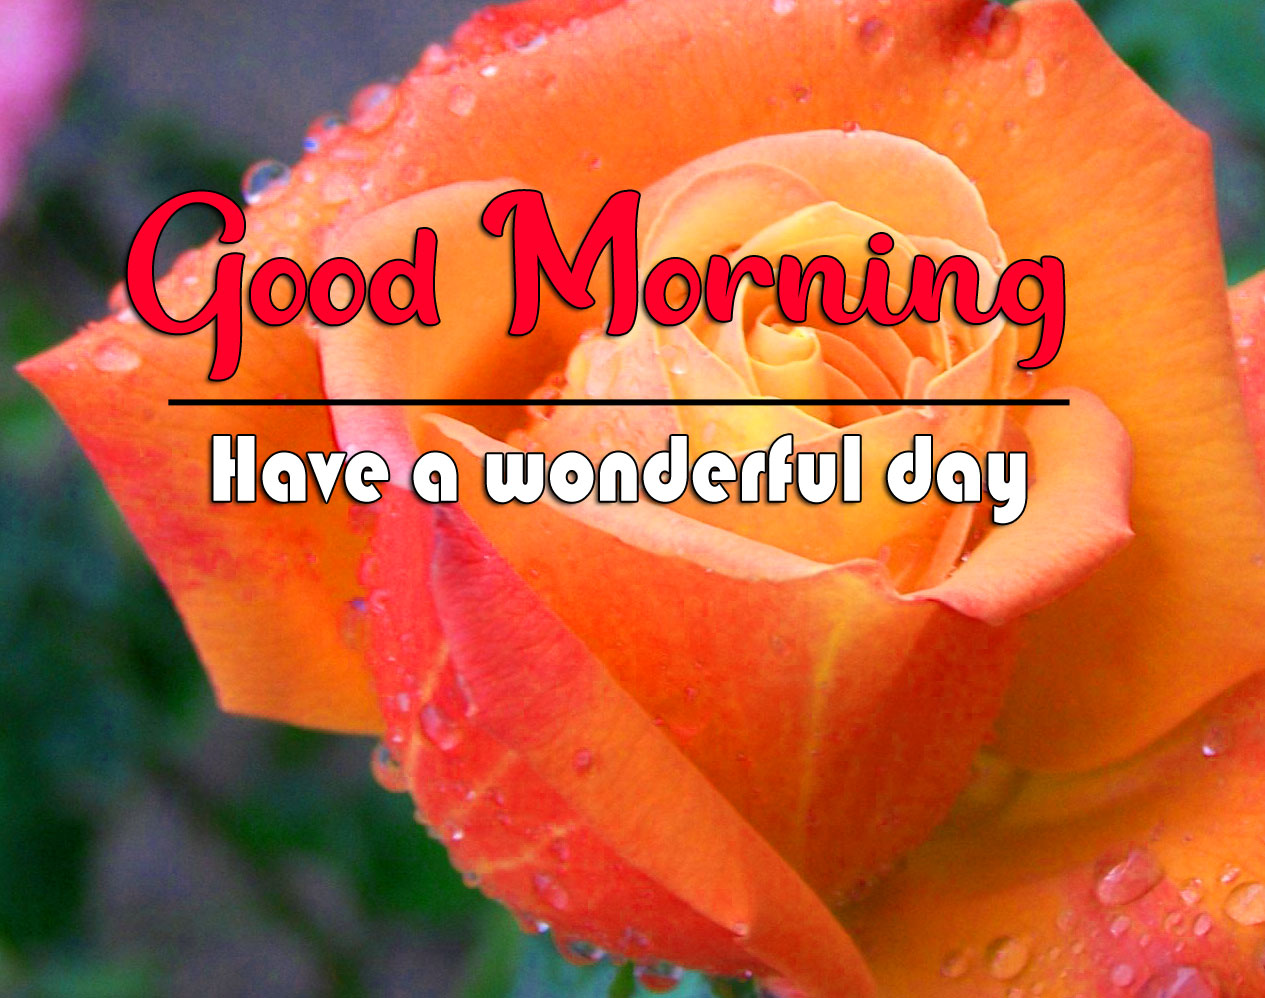 Good Morning Wishes Pics 2021 2